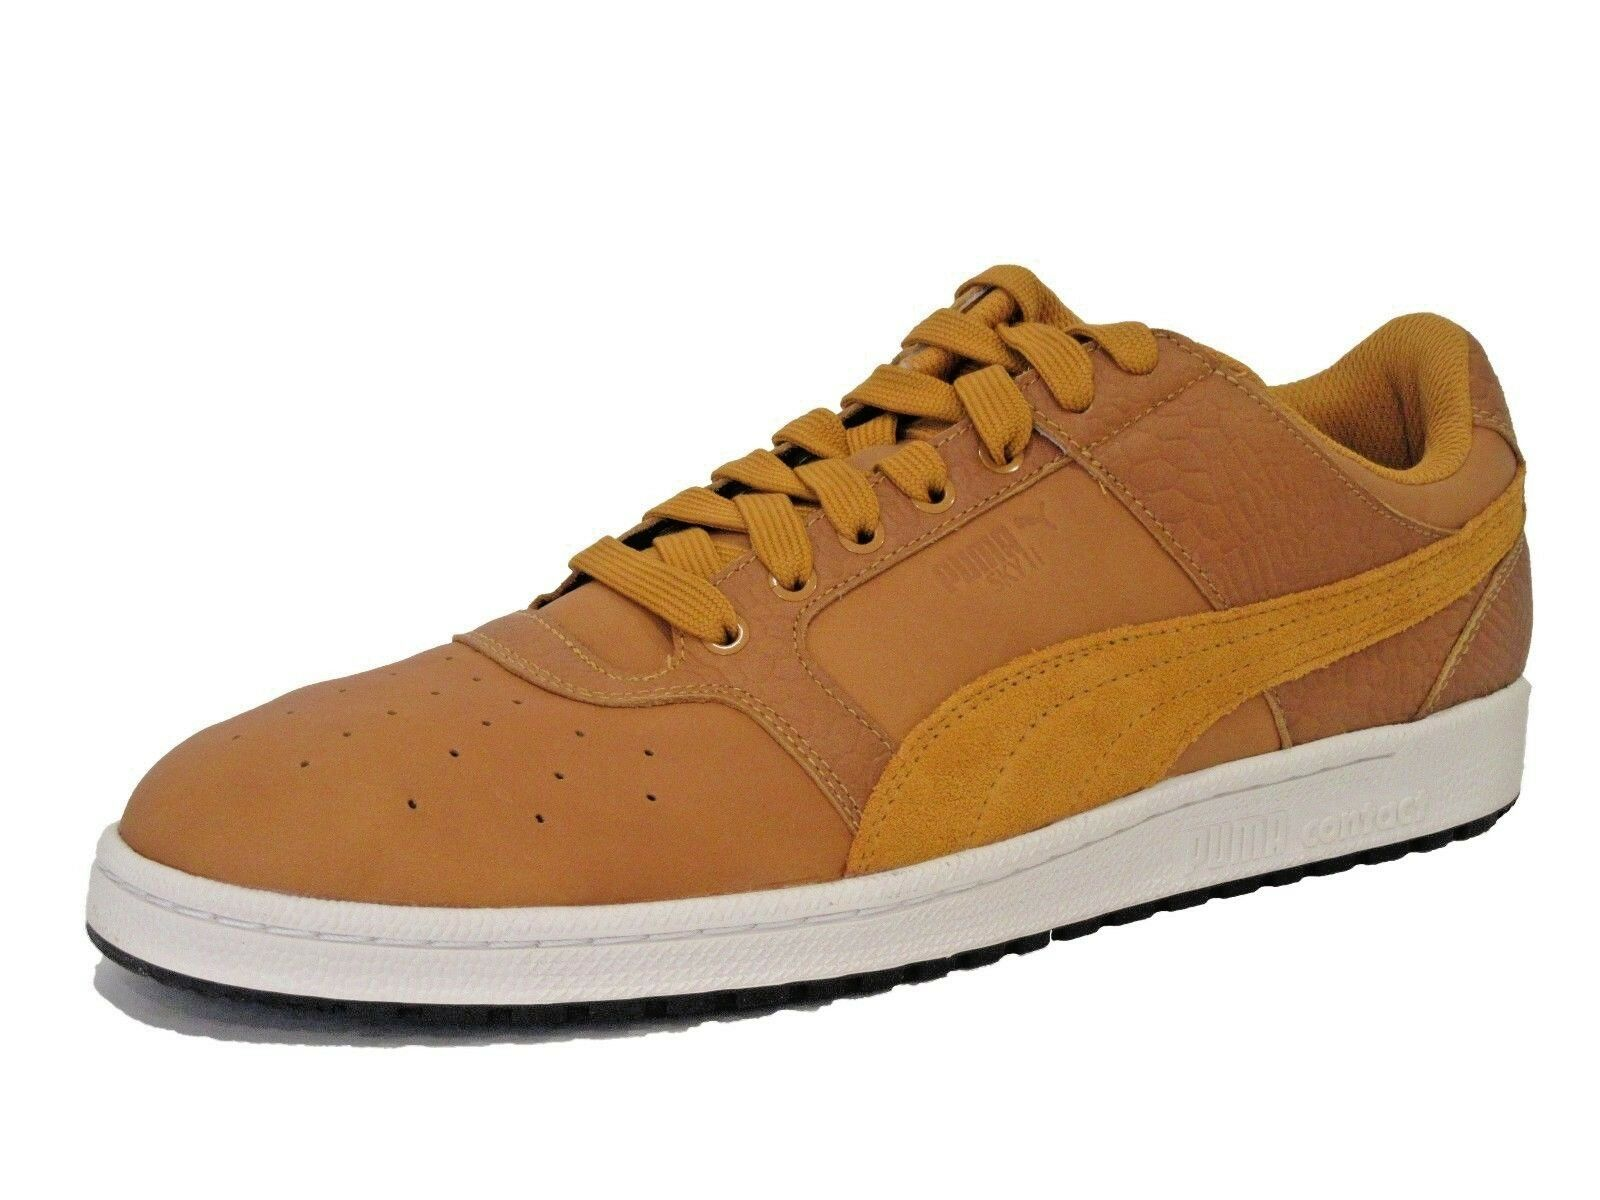 PUMA Mens Sky Ii Lo cgoldr Blocked Lace up Sneakers shoes